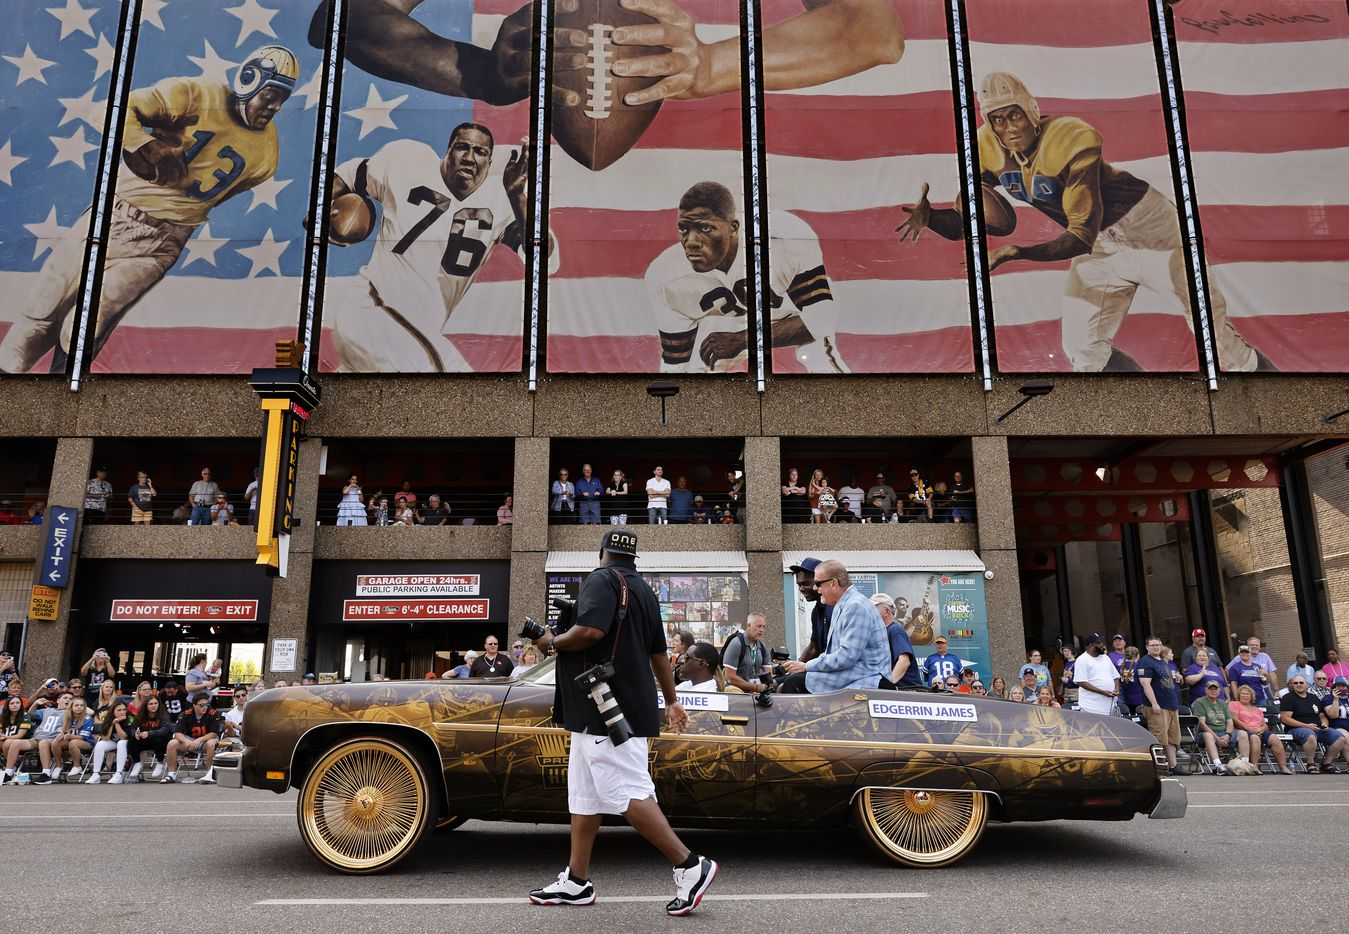 Pro Football Hall of Fame inductee Edgerrin James of the Indianapolis Colts (in black hat) rides in a decorated car during the Canton Repository Grand Parade in downtown Canton, Ohio, Saturday, August 7, 2021. The parade honored newly elected and former members of the Hall, including newcomers and former Dallas Cowboys players Cliff Harris, Drew Pearson and head coach Jimmy Johnson. (Tom Fox/The Dallas Morning News)